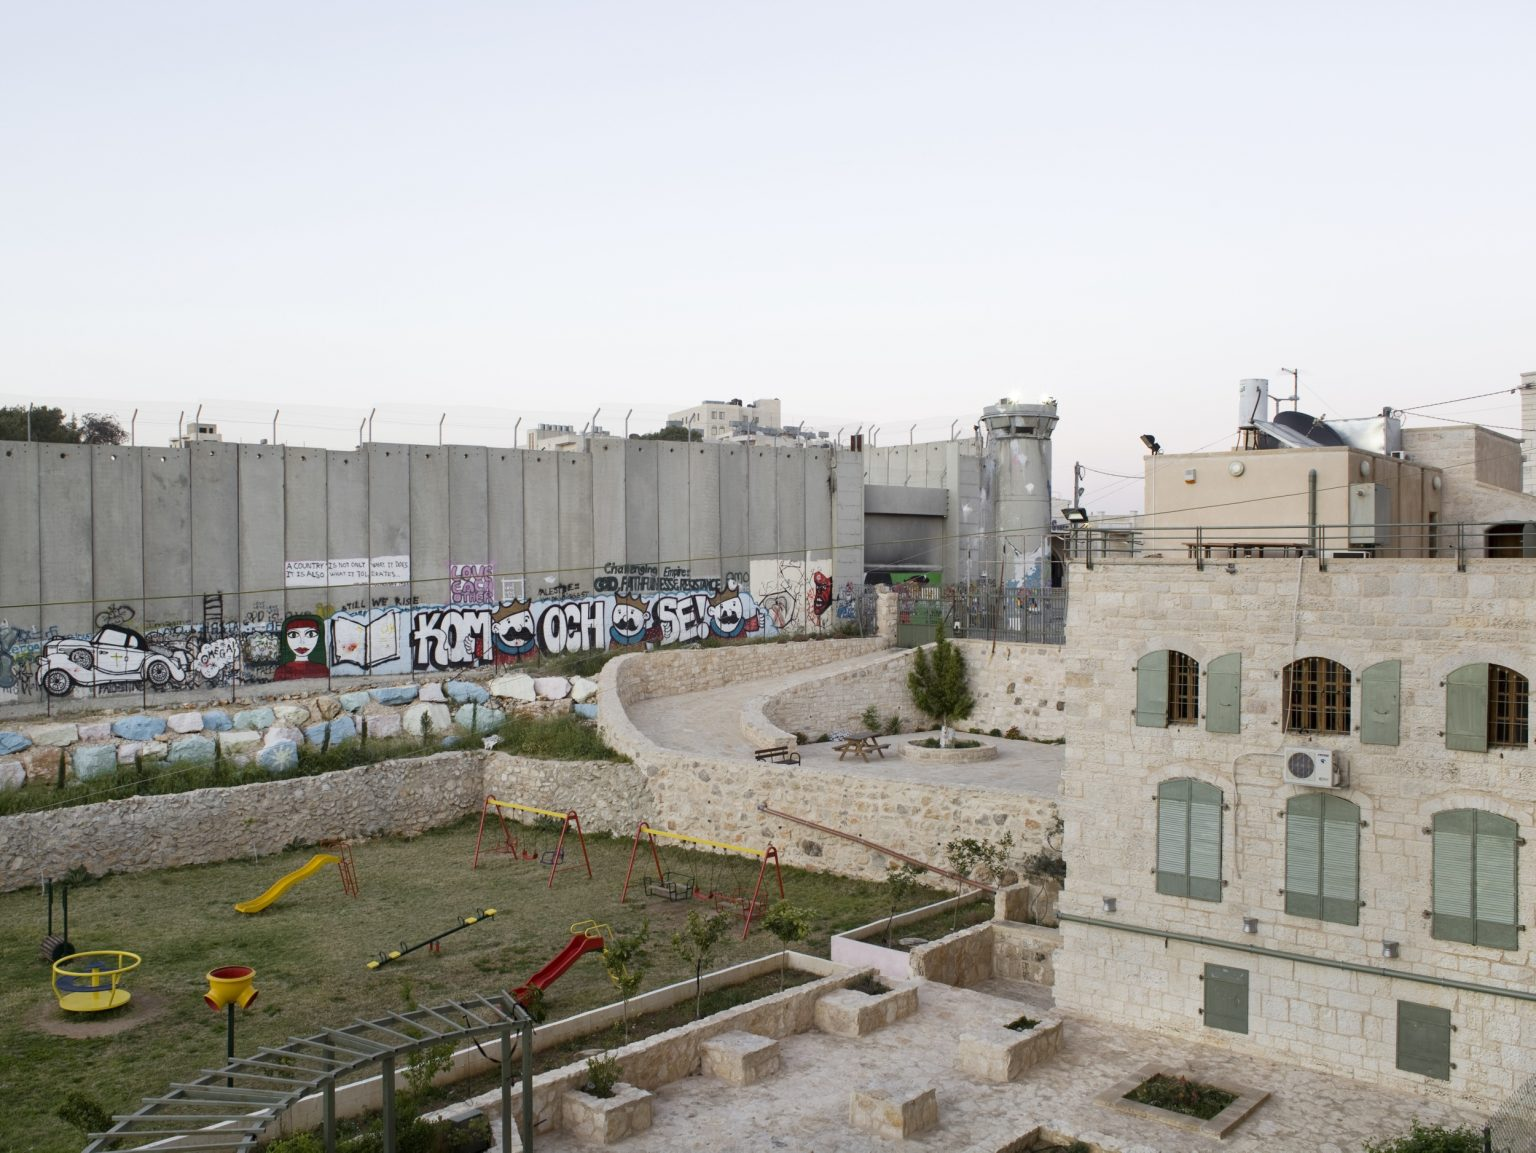 View of the separation wall in Bethlehem.